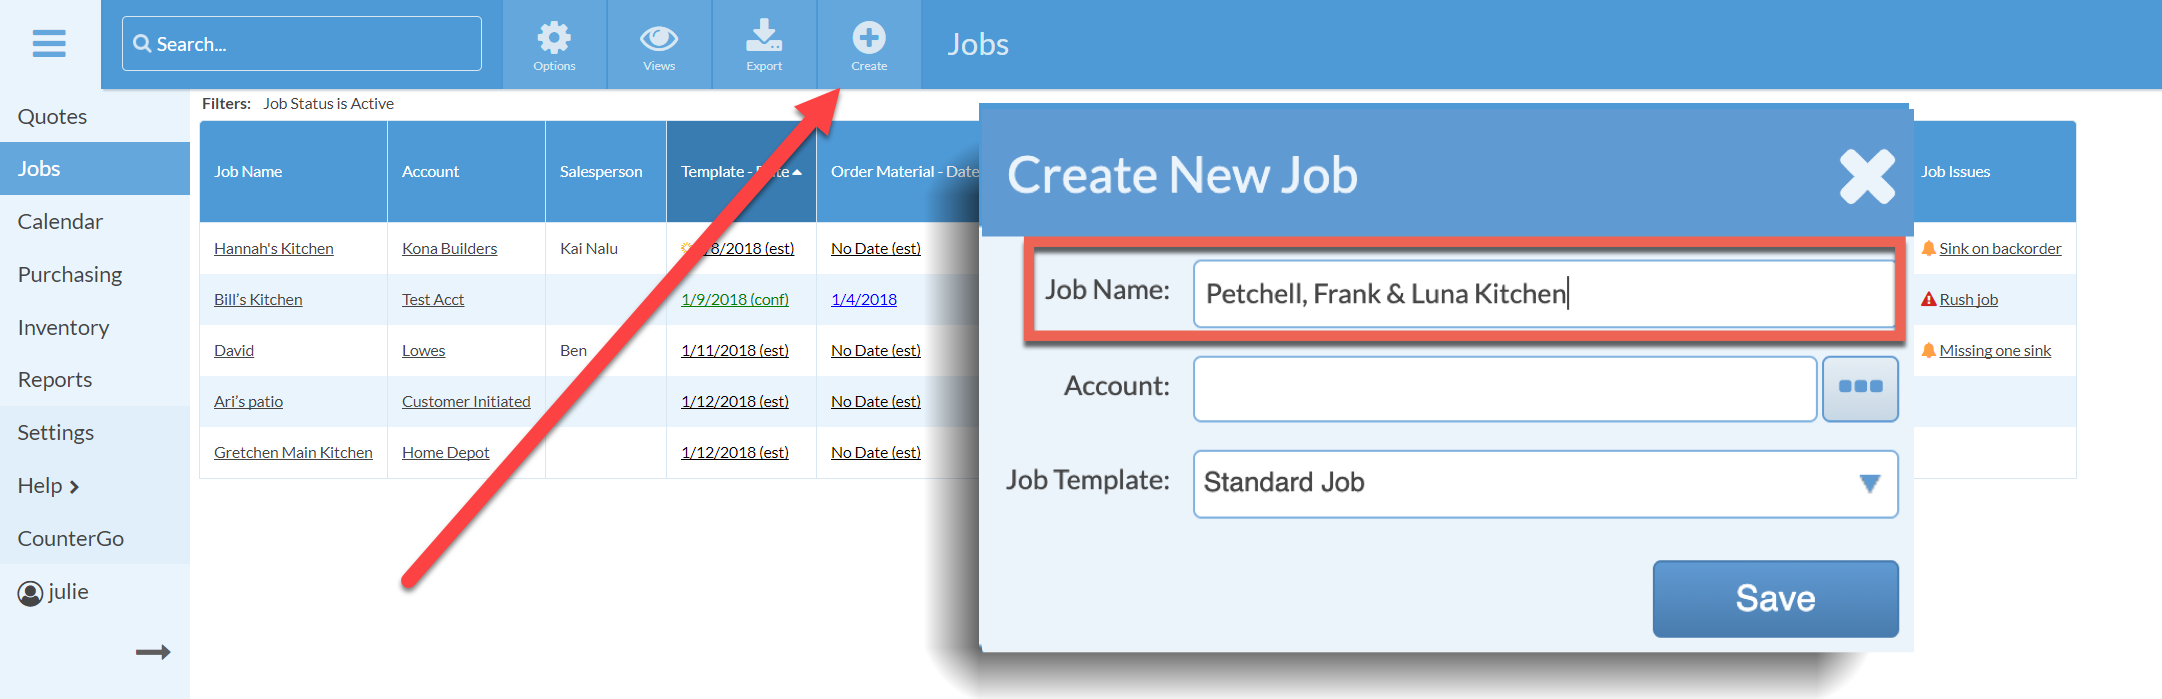 create a new job